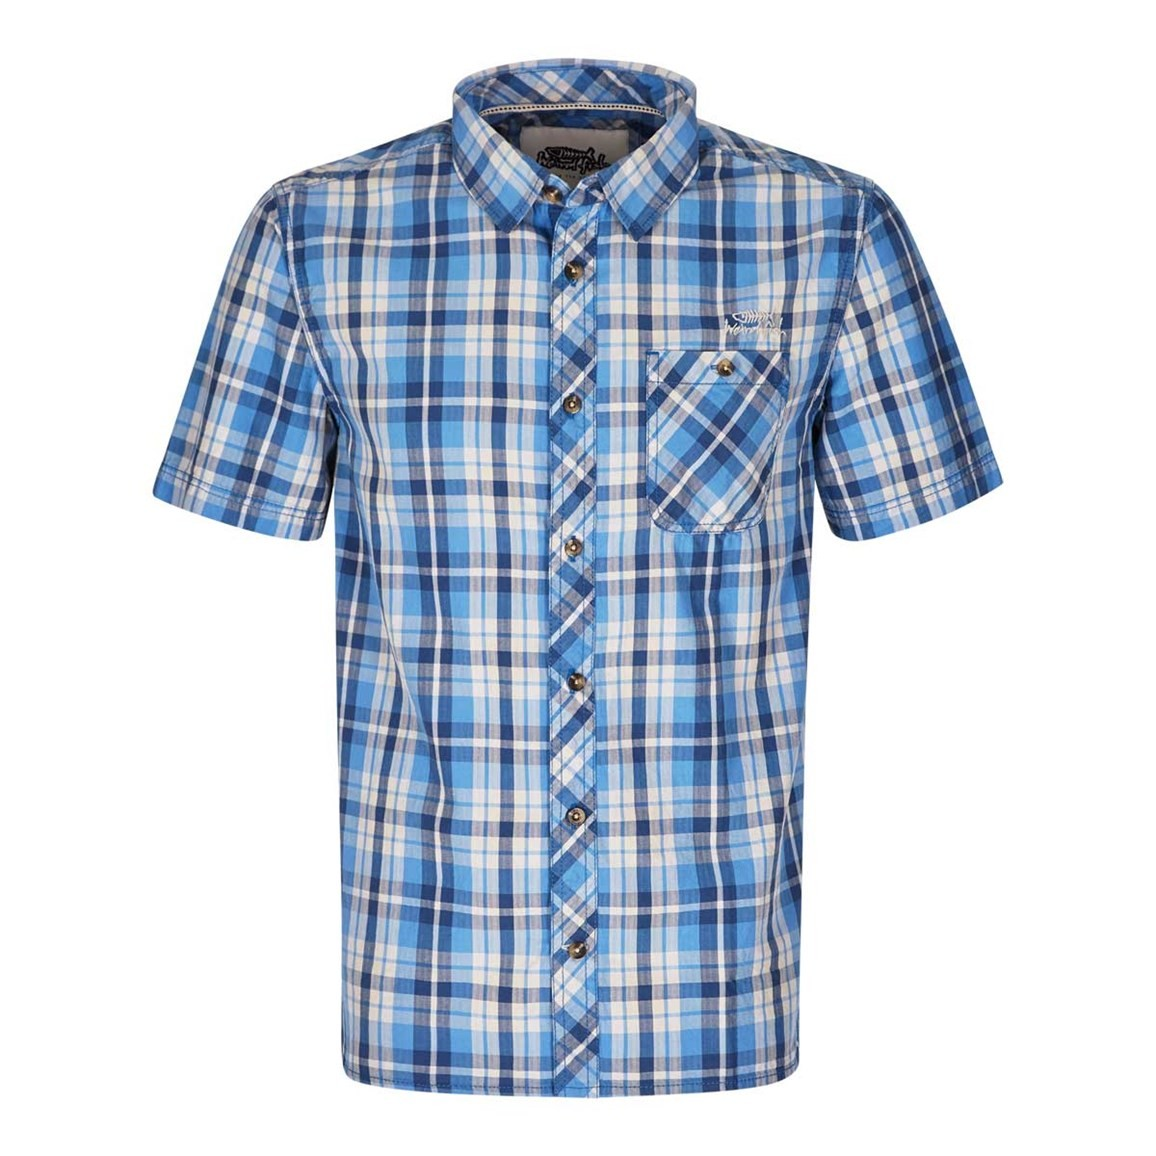 Weird Fish Zepar Cotton Short Sleeve Check Shirt Regatta Blue